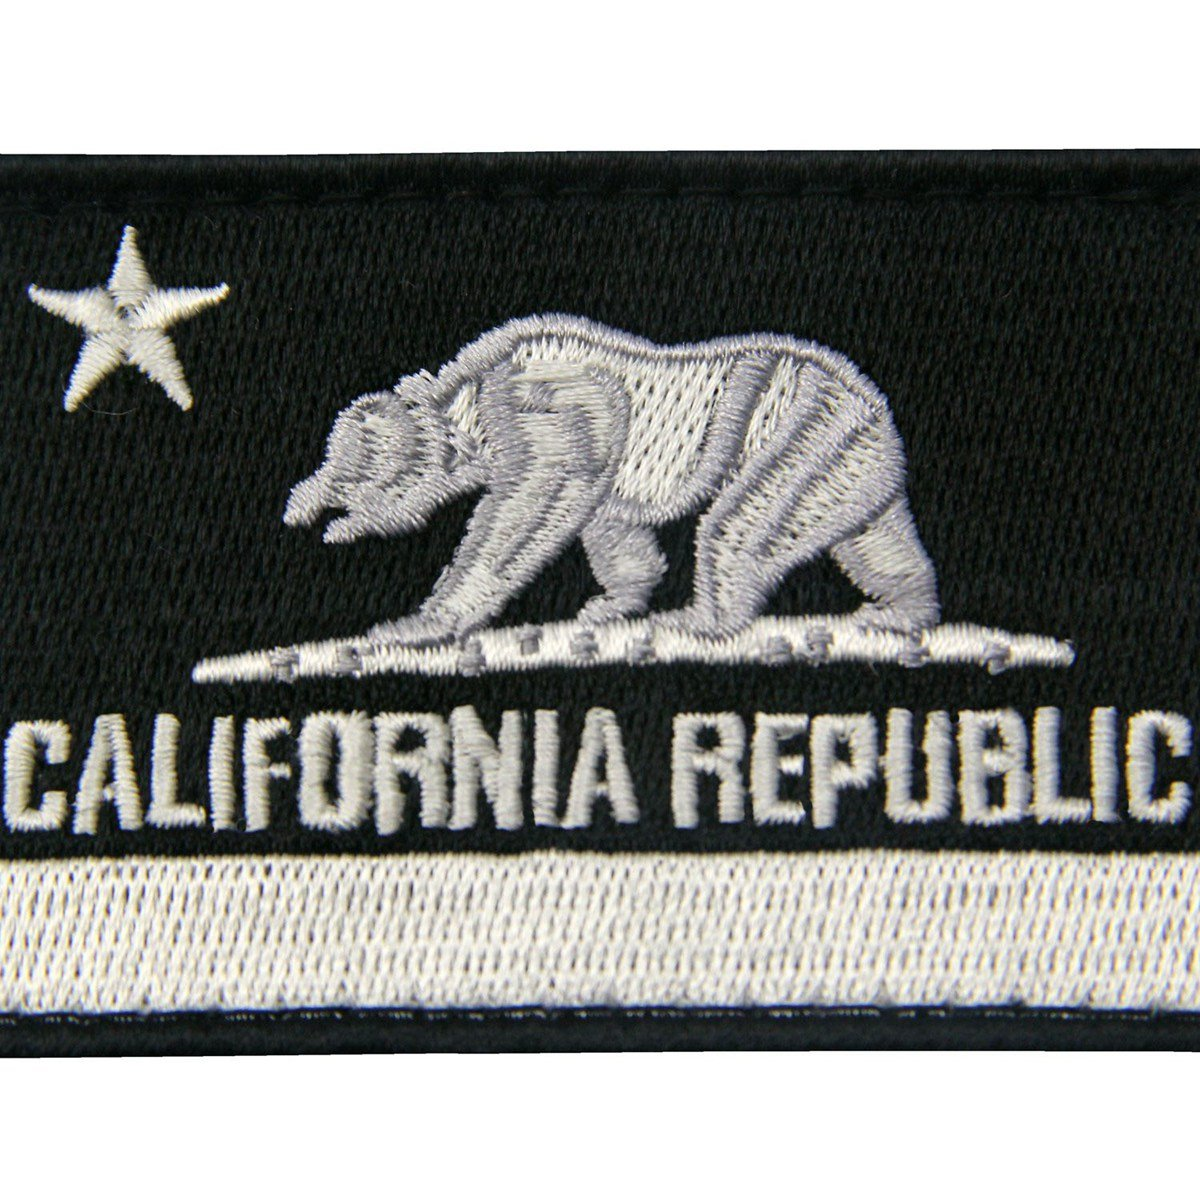 White /& Black EmbTao California Tactical Embroidered Applique Fastener Hook/&Loop Patch